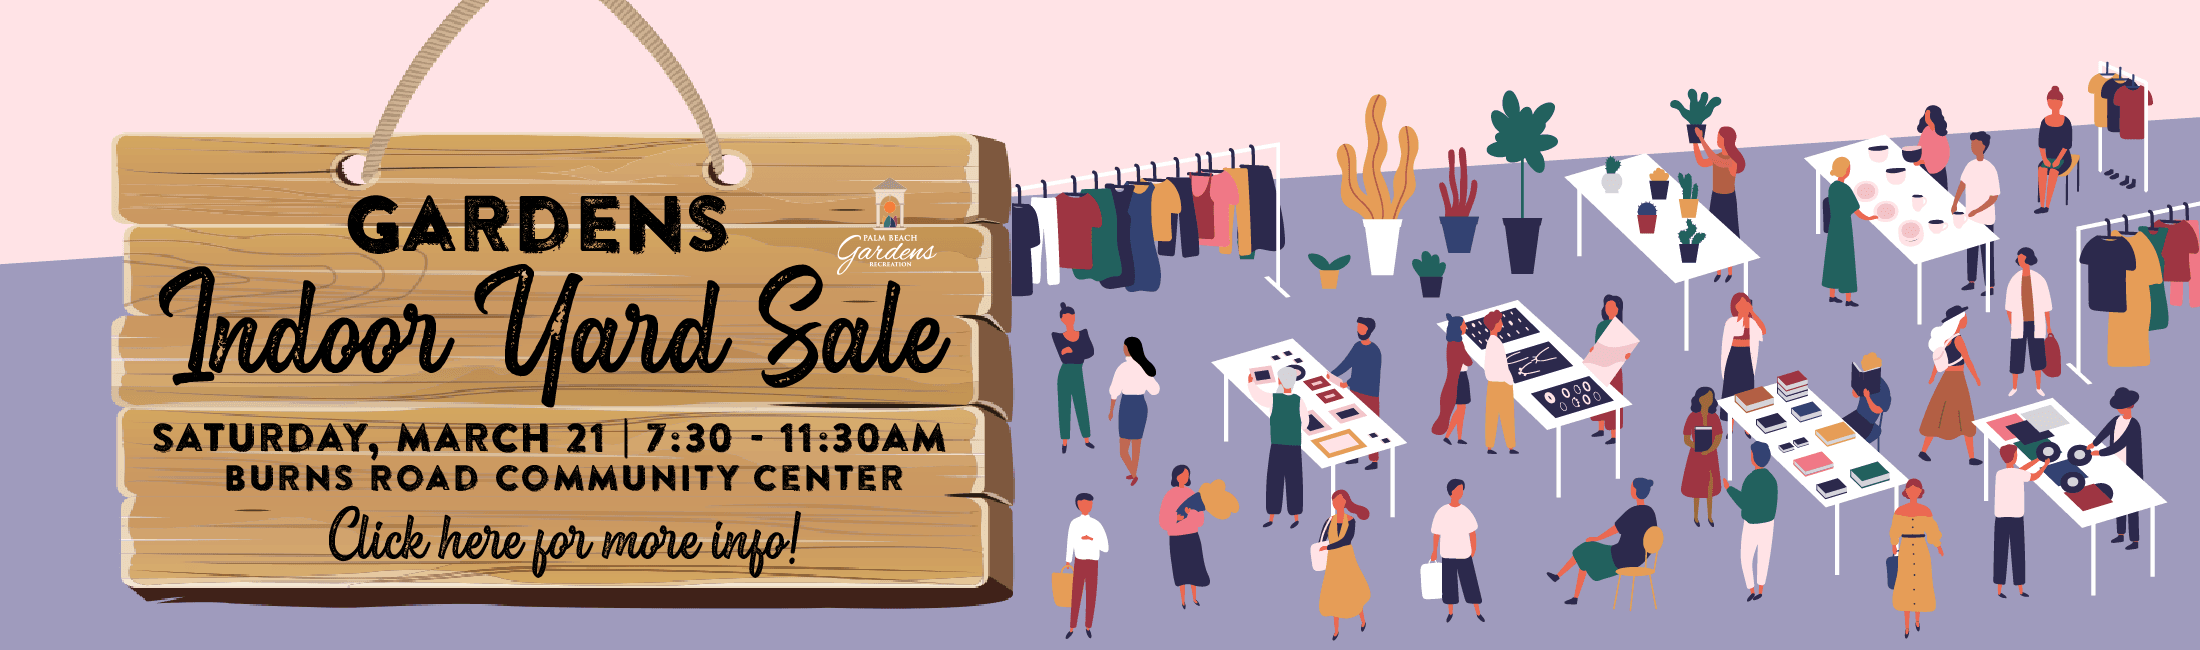 Indoor Yard Sale- Saturday, March 21 at Burns Road Community Center from 7:30 to 11:30 a.m.